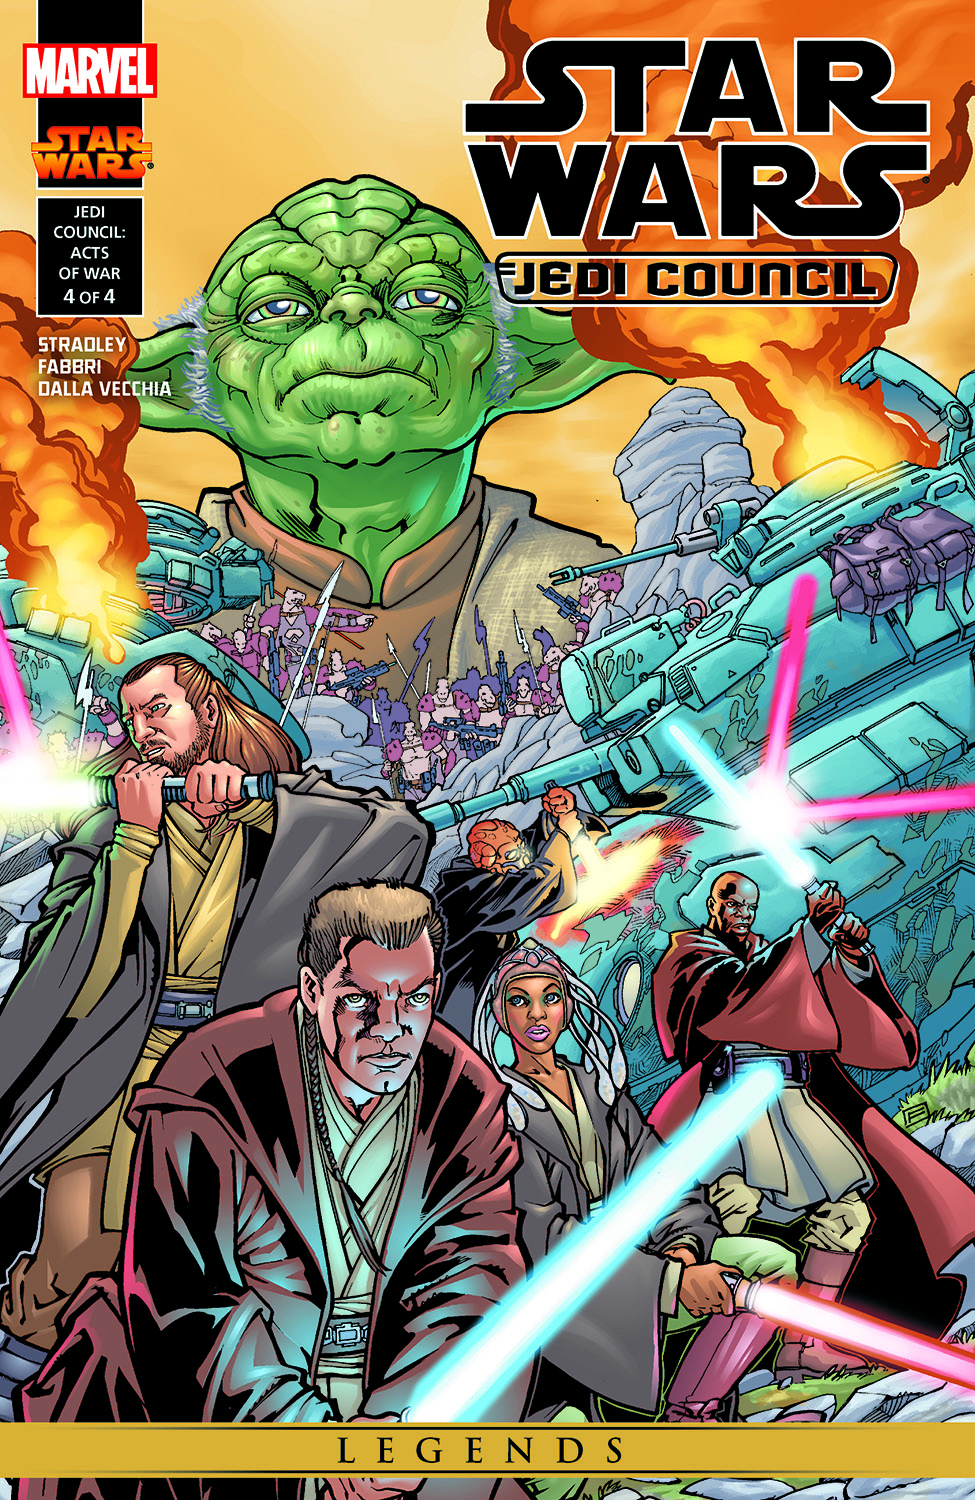 Star Wars: Jedi Council - Acts Of War (2000) #4